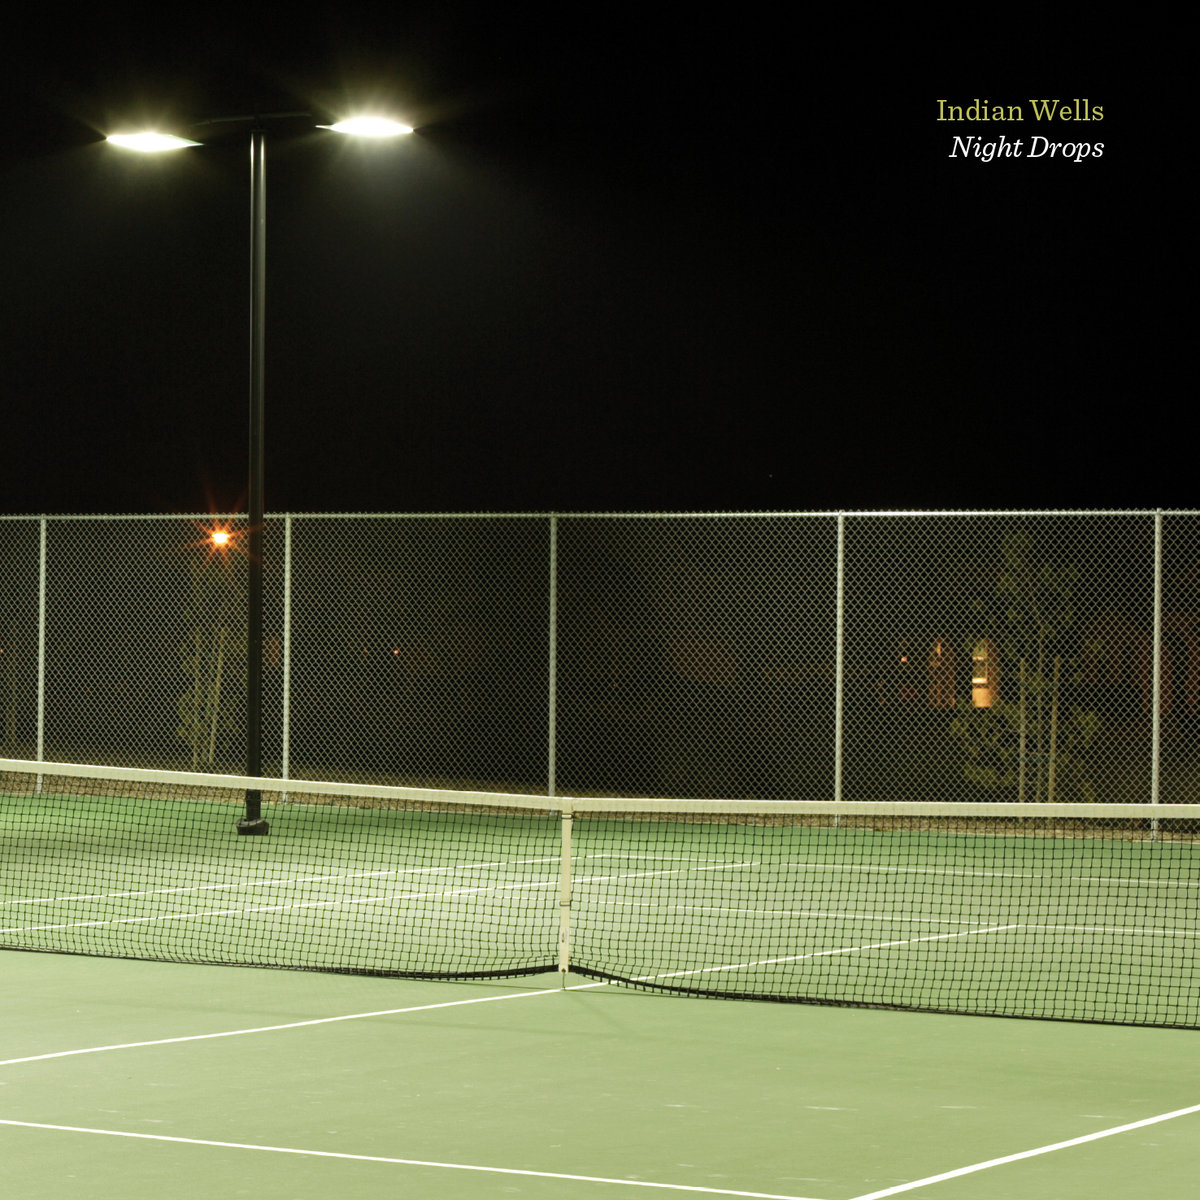 Indian Wells - Wimbledon 1980 @ 'Night Drops' album (alternative, ambient)